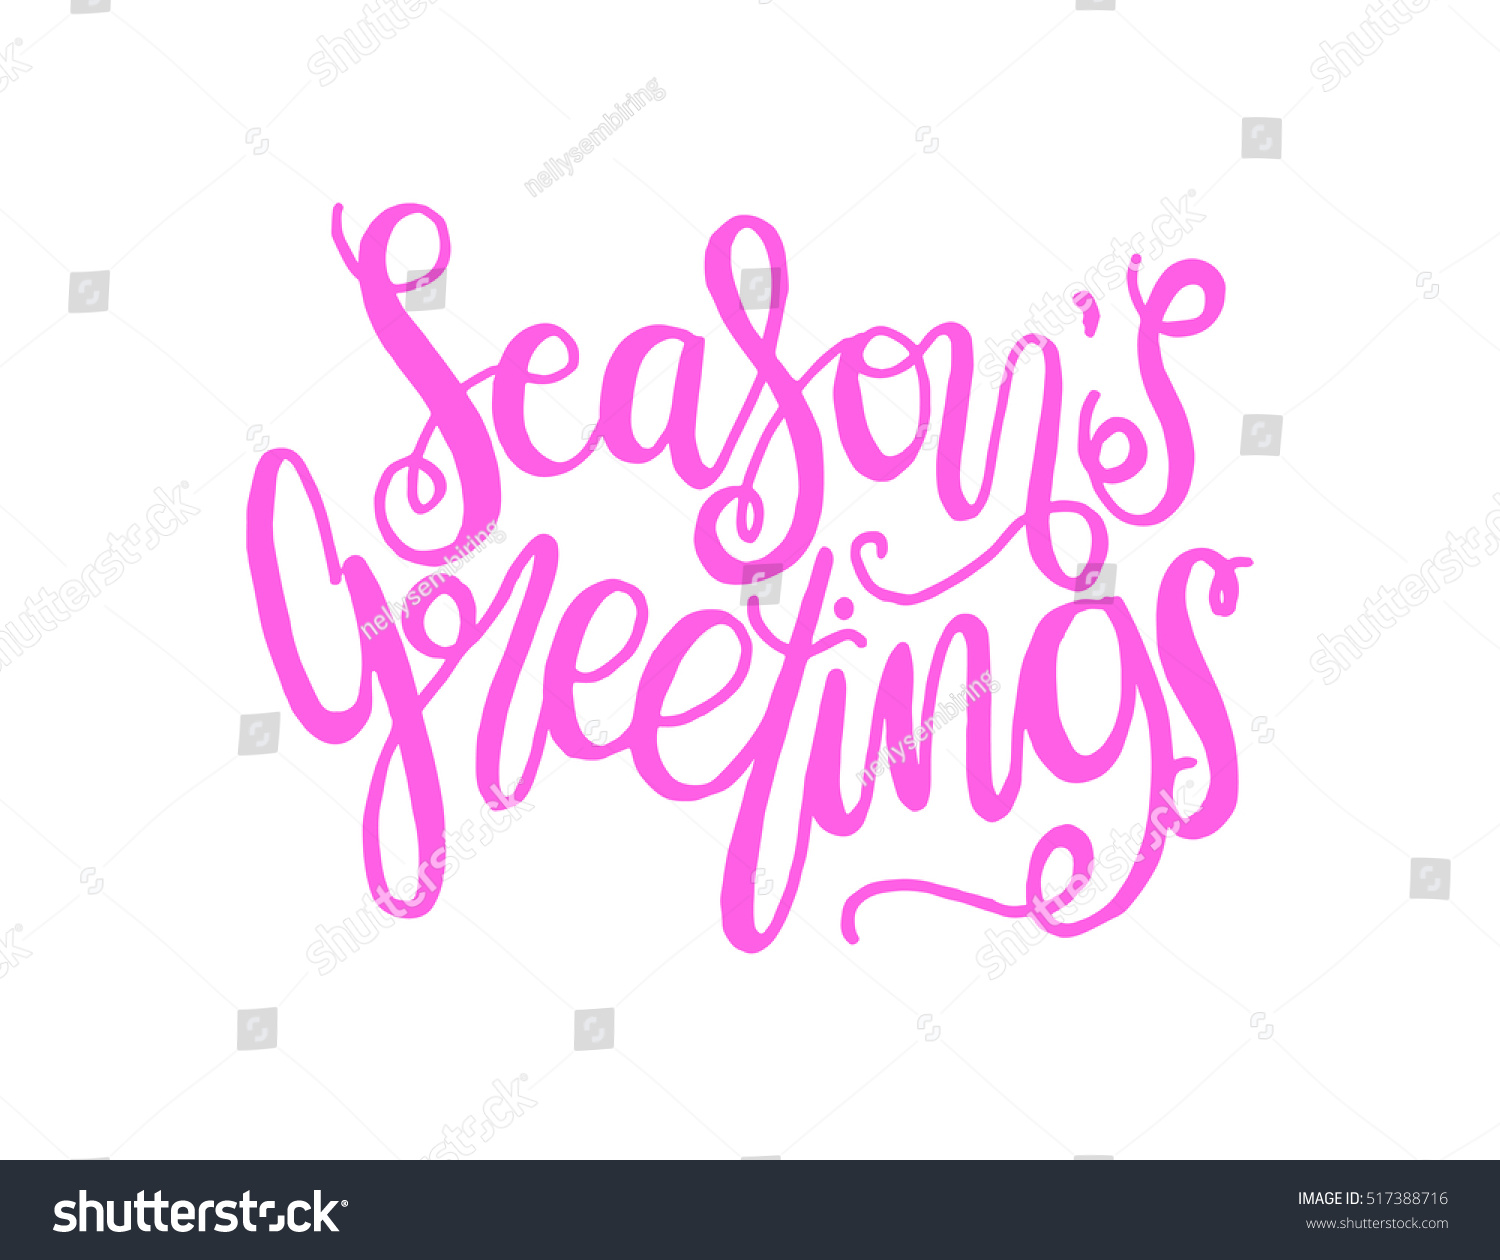 Seasons Greetings Hand Lettered Quote Bible Stock Photo Photo